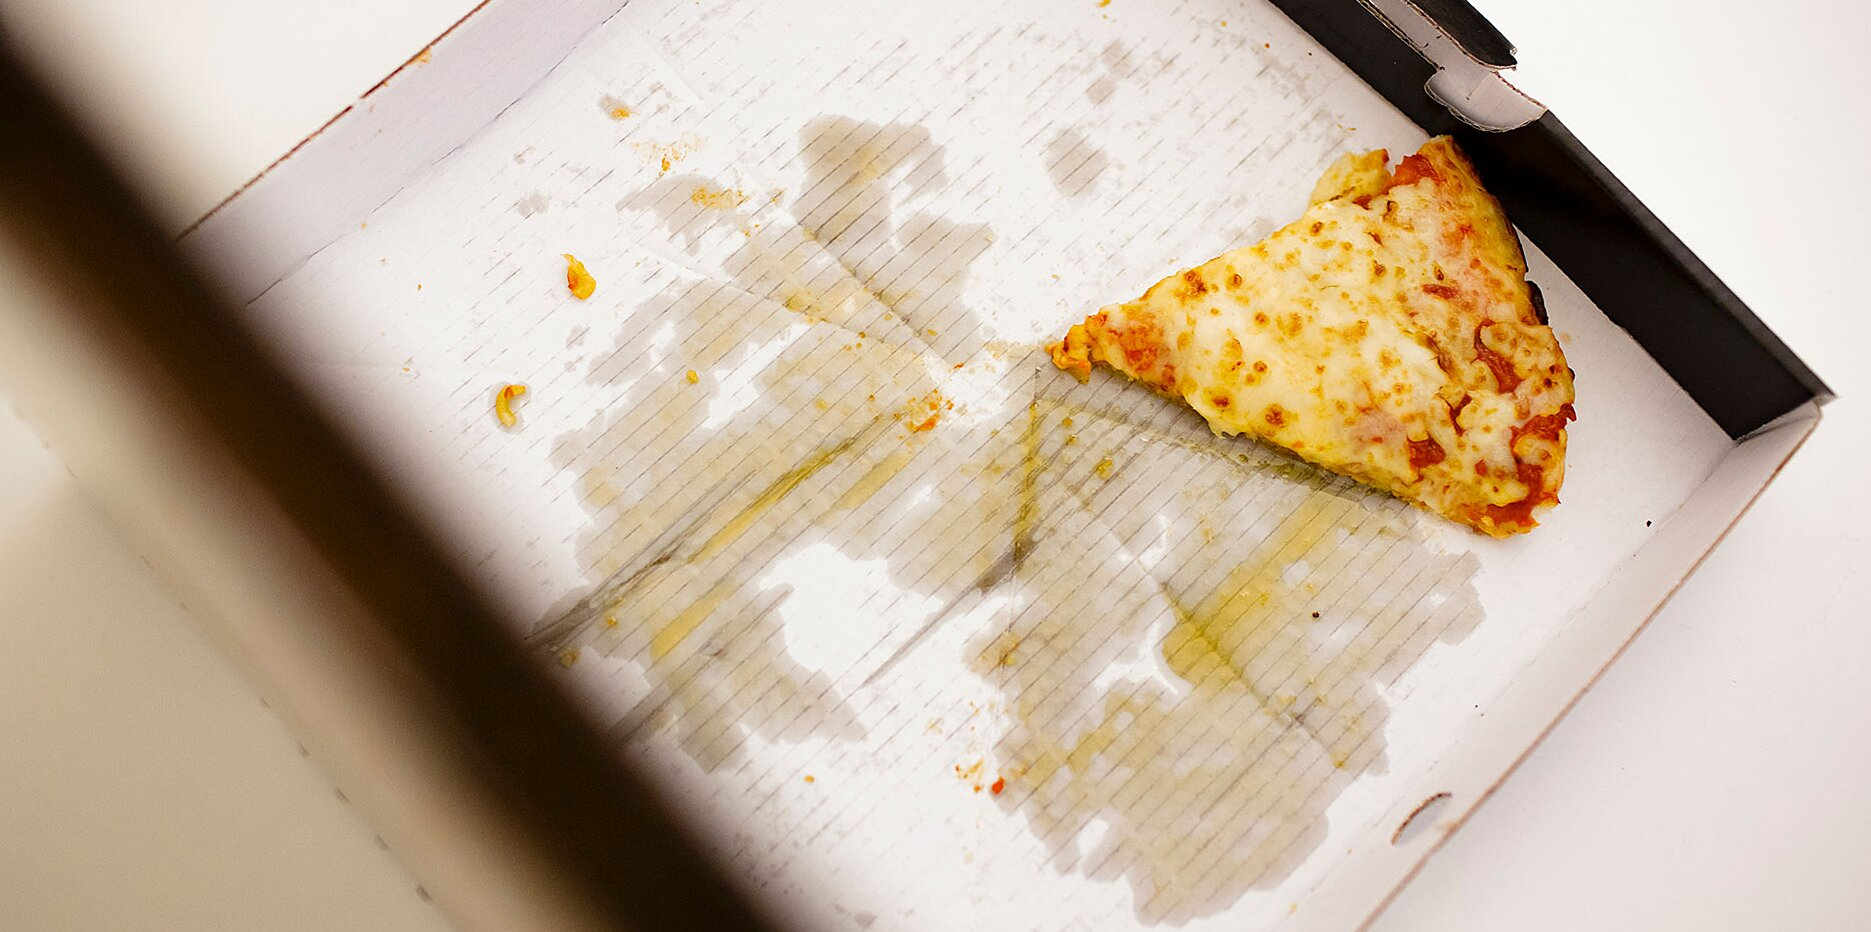 pizza box recycle study FT BLOG0720.